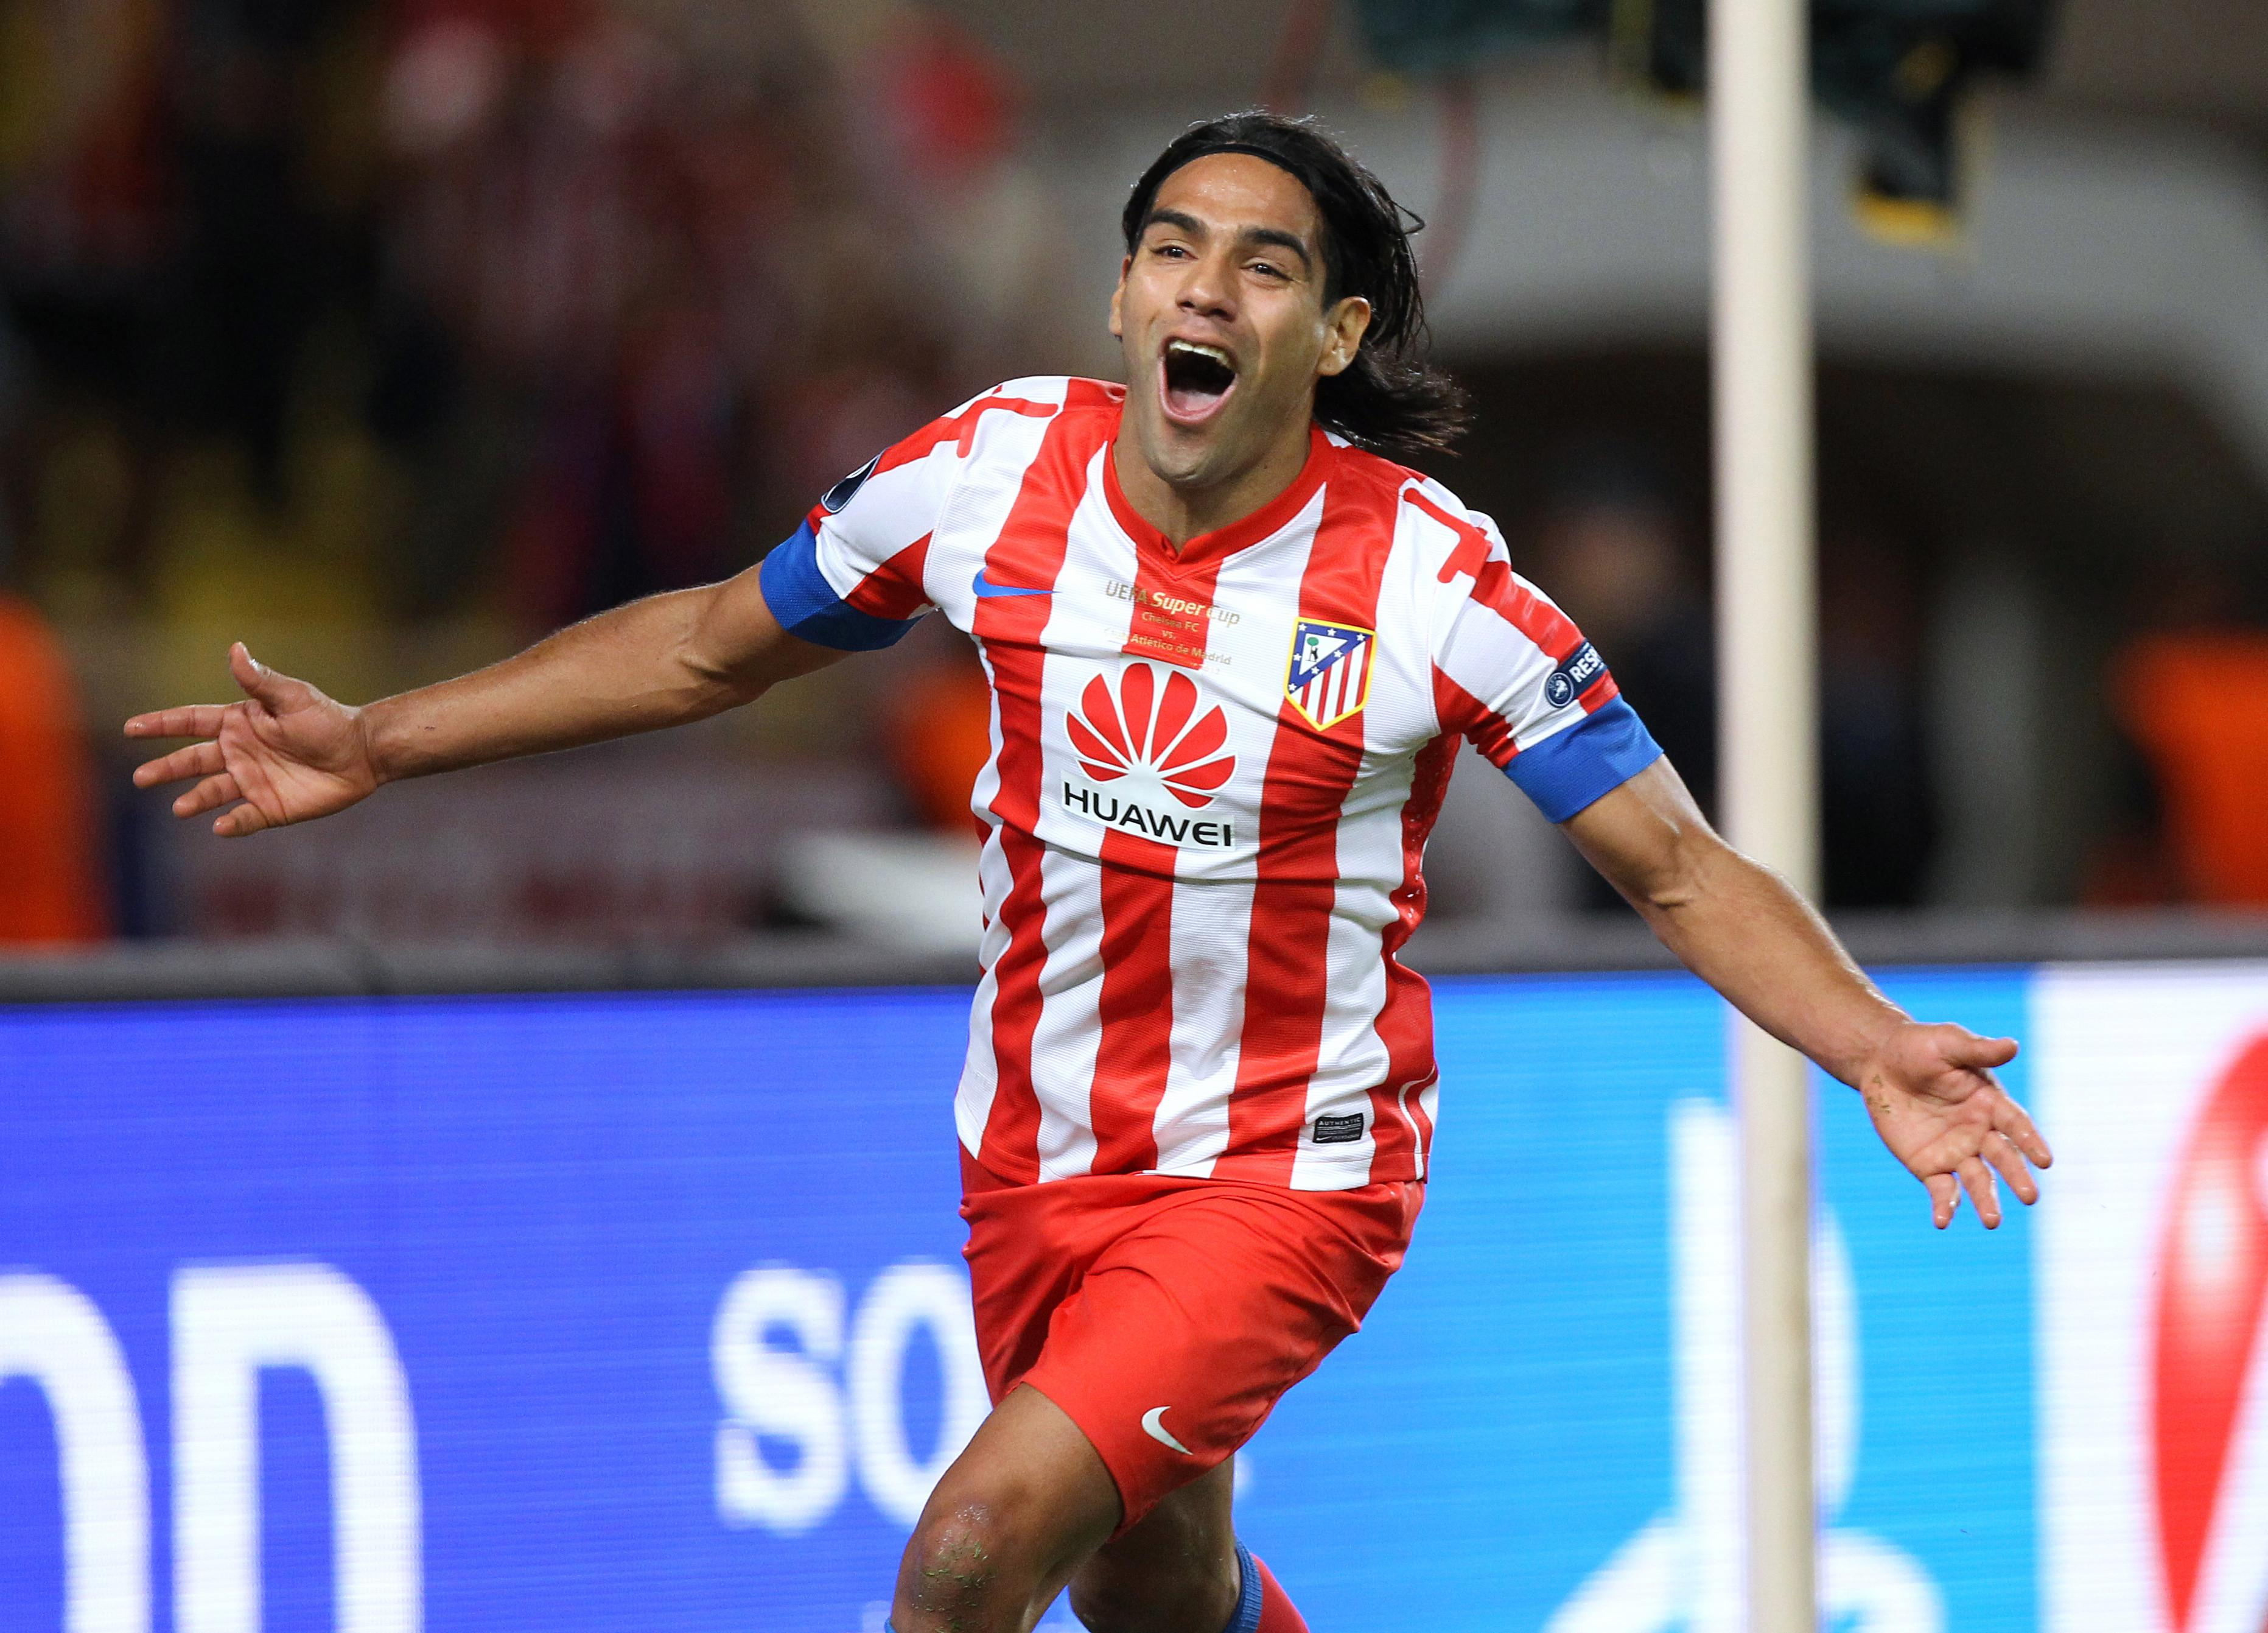 Atletico Madrid's Colombian forward Radamel Falcao celebrates after scoring a third goal during the UEFA Super Cup football match Chelsea FC versus Club Atletico Madrid, on August 31, 2012 at the Stade Louis II, in Monaco. AFP PHOTO / VALERY HACHE (Photo credit should read VALERY HACHE/AFP/GettyImages)